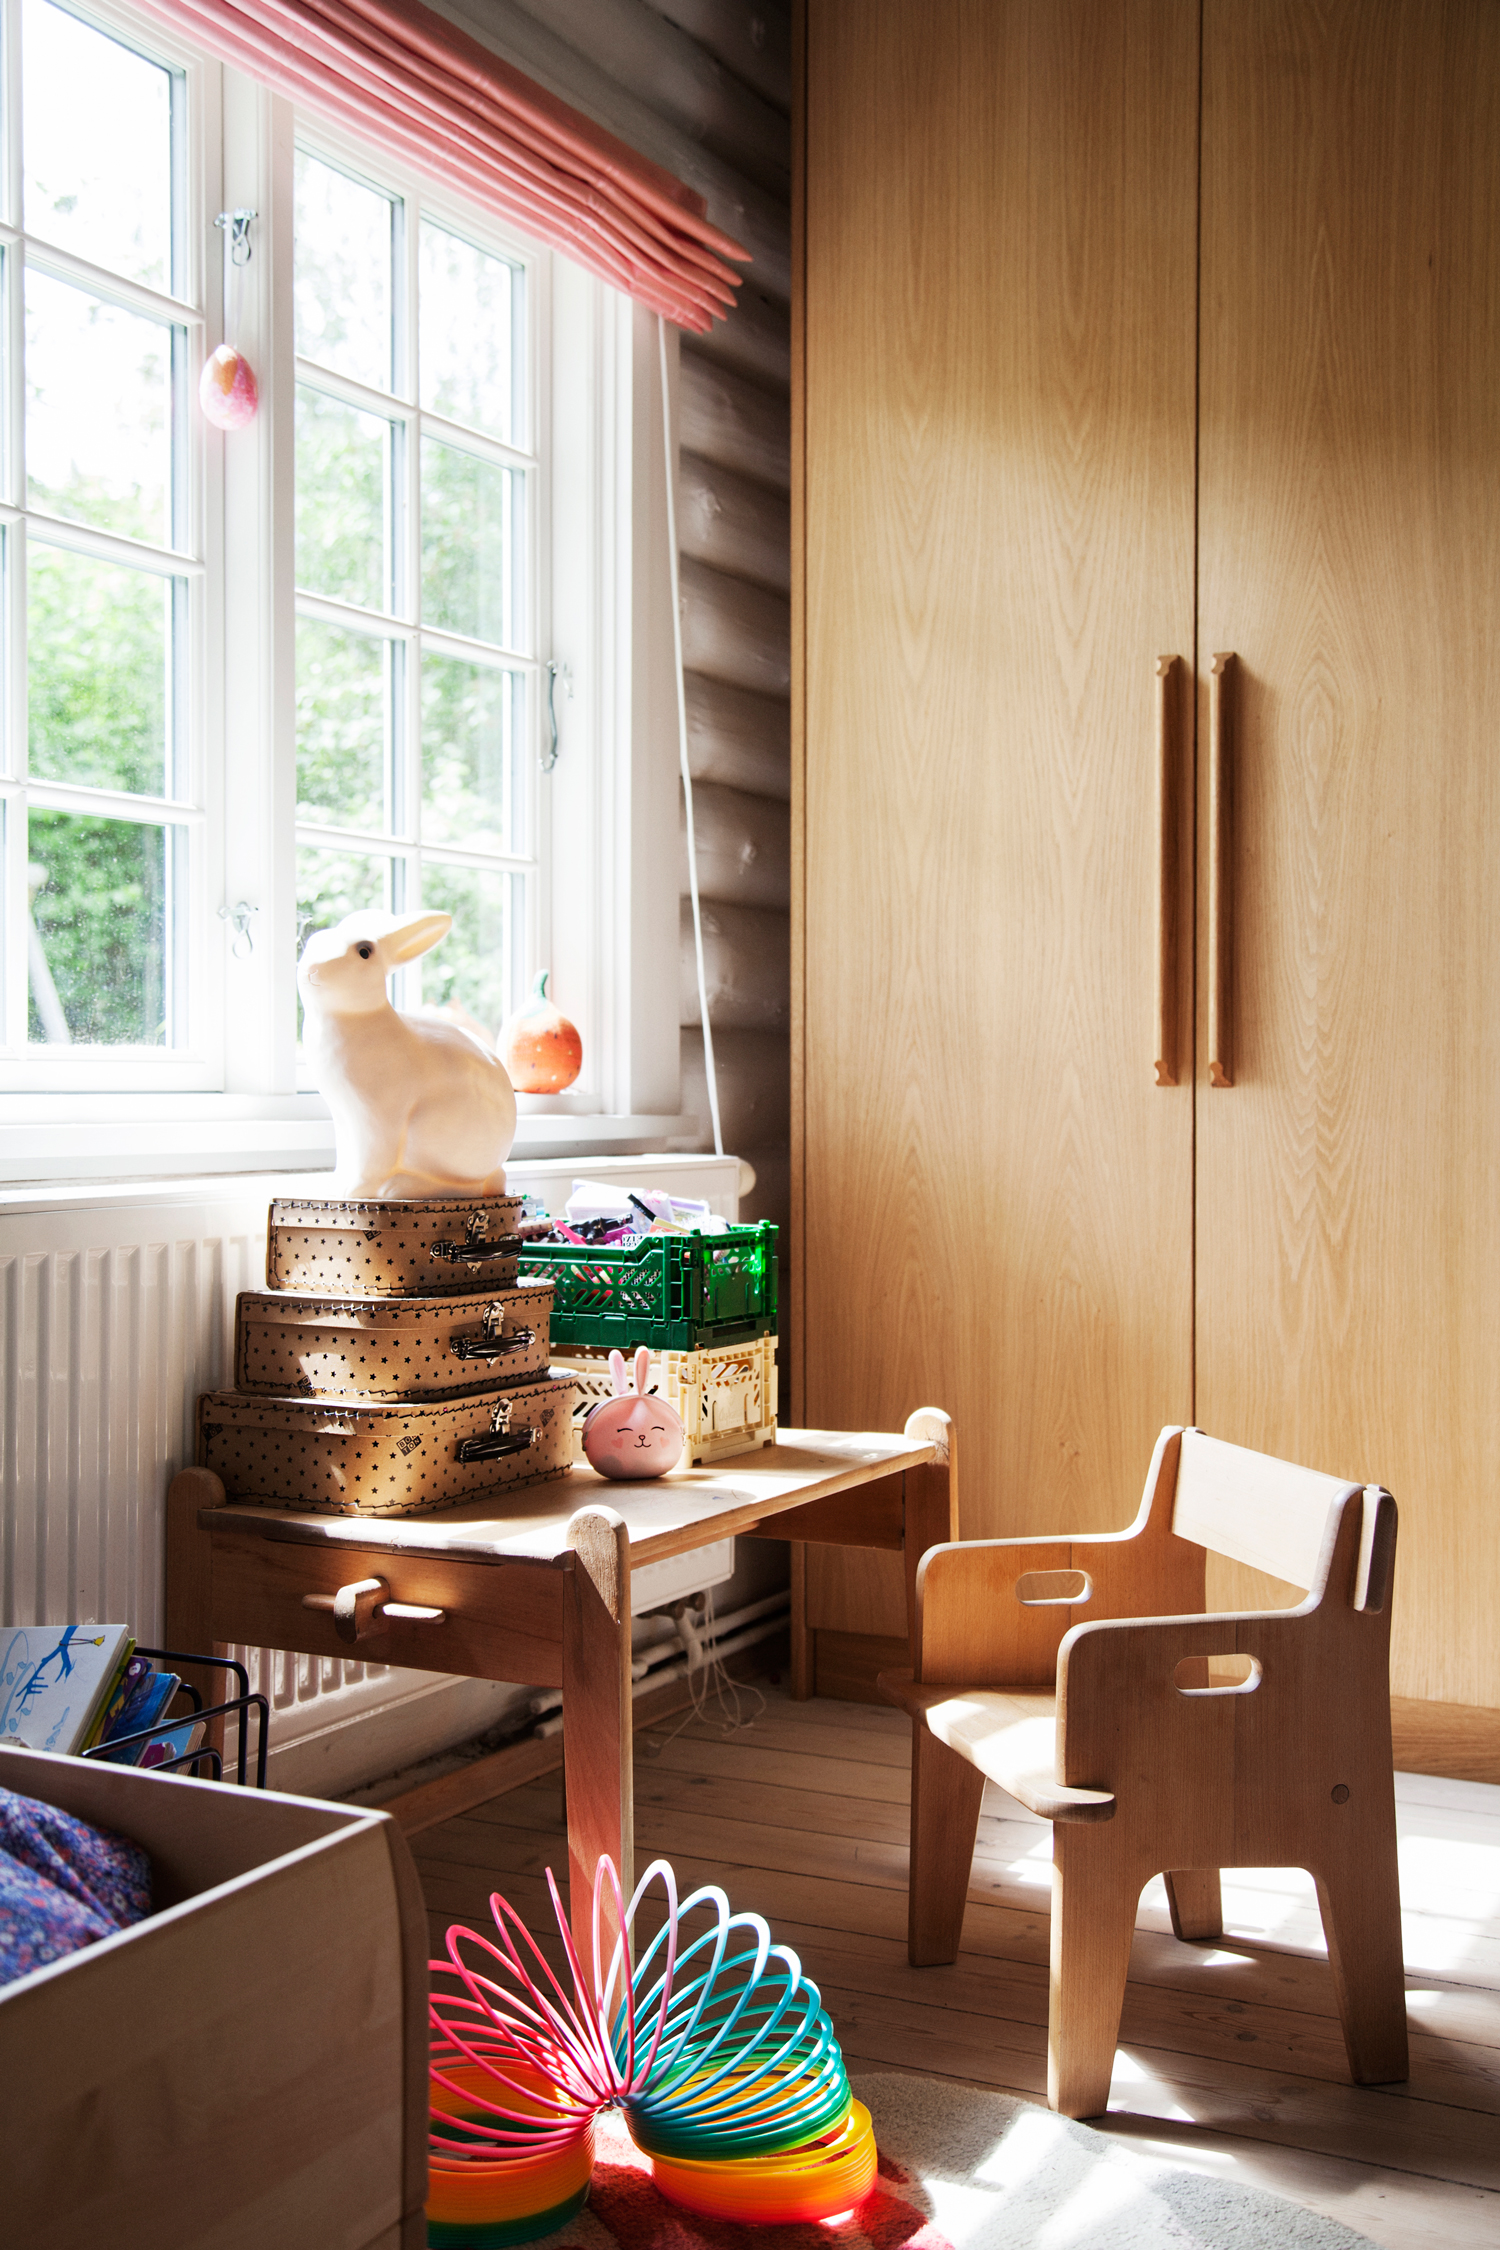 A corner in Carla's room, showing a glimpse of the handmade  Echo Bed , the  Bunny Lamp  and  foldable boxes  on the table.